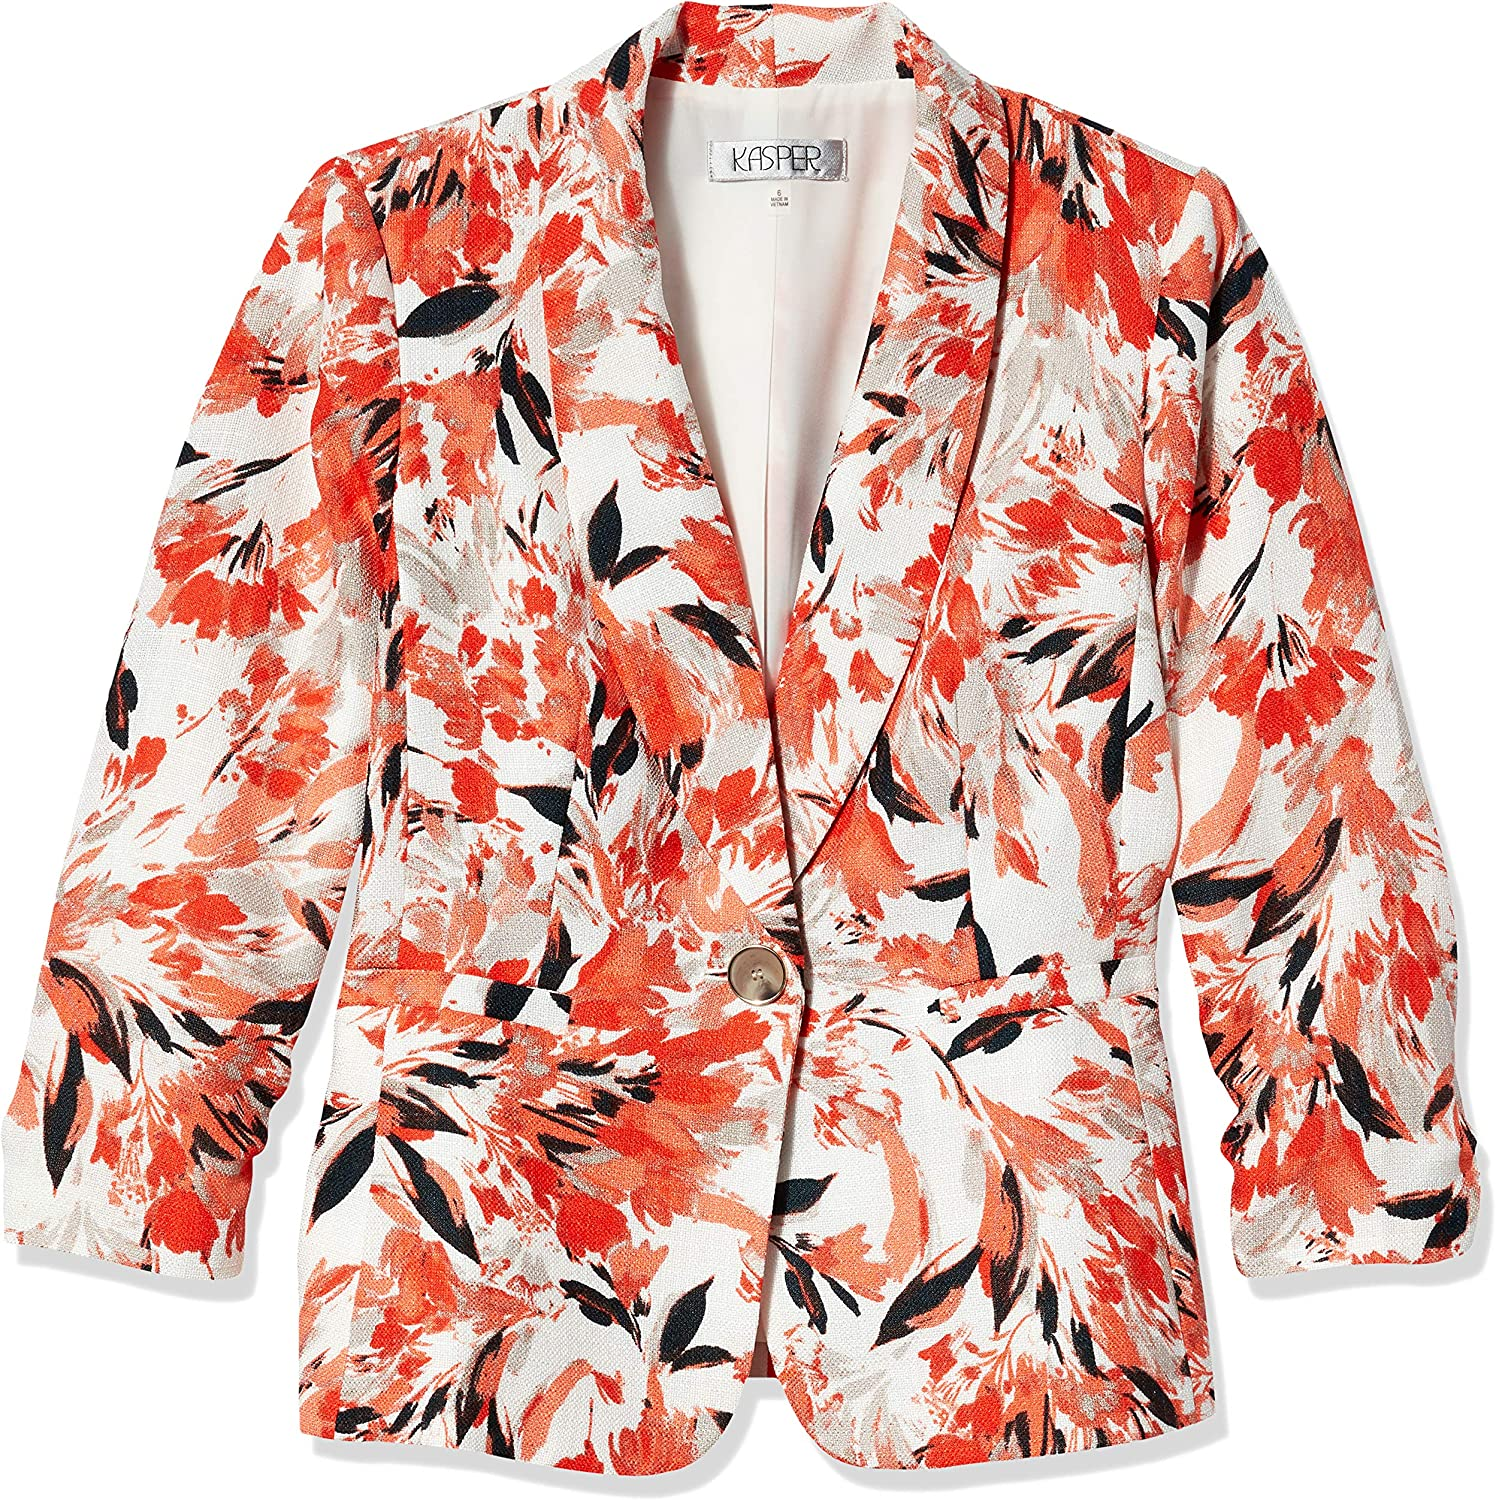 Kasper Women's Botanical Floral Printed Shawl Collar Jacket with Rouched Sleeves